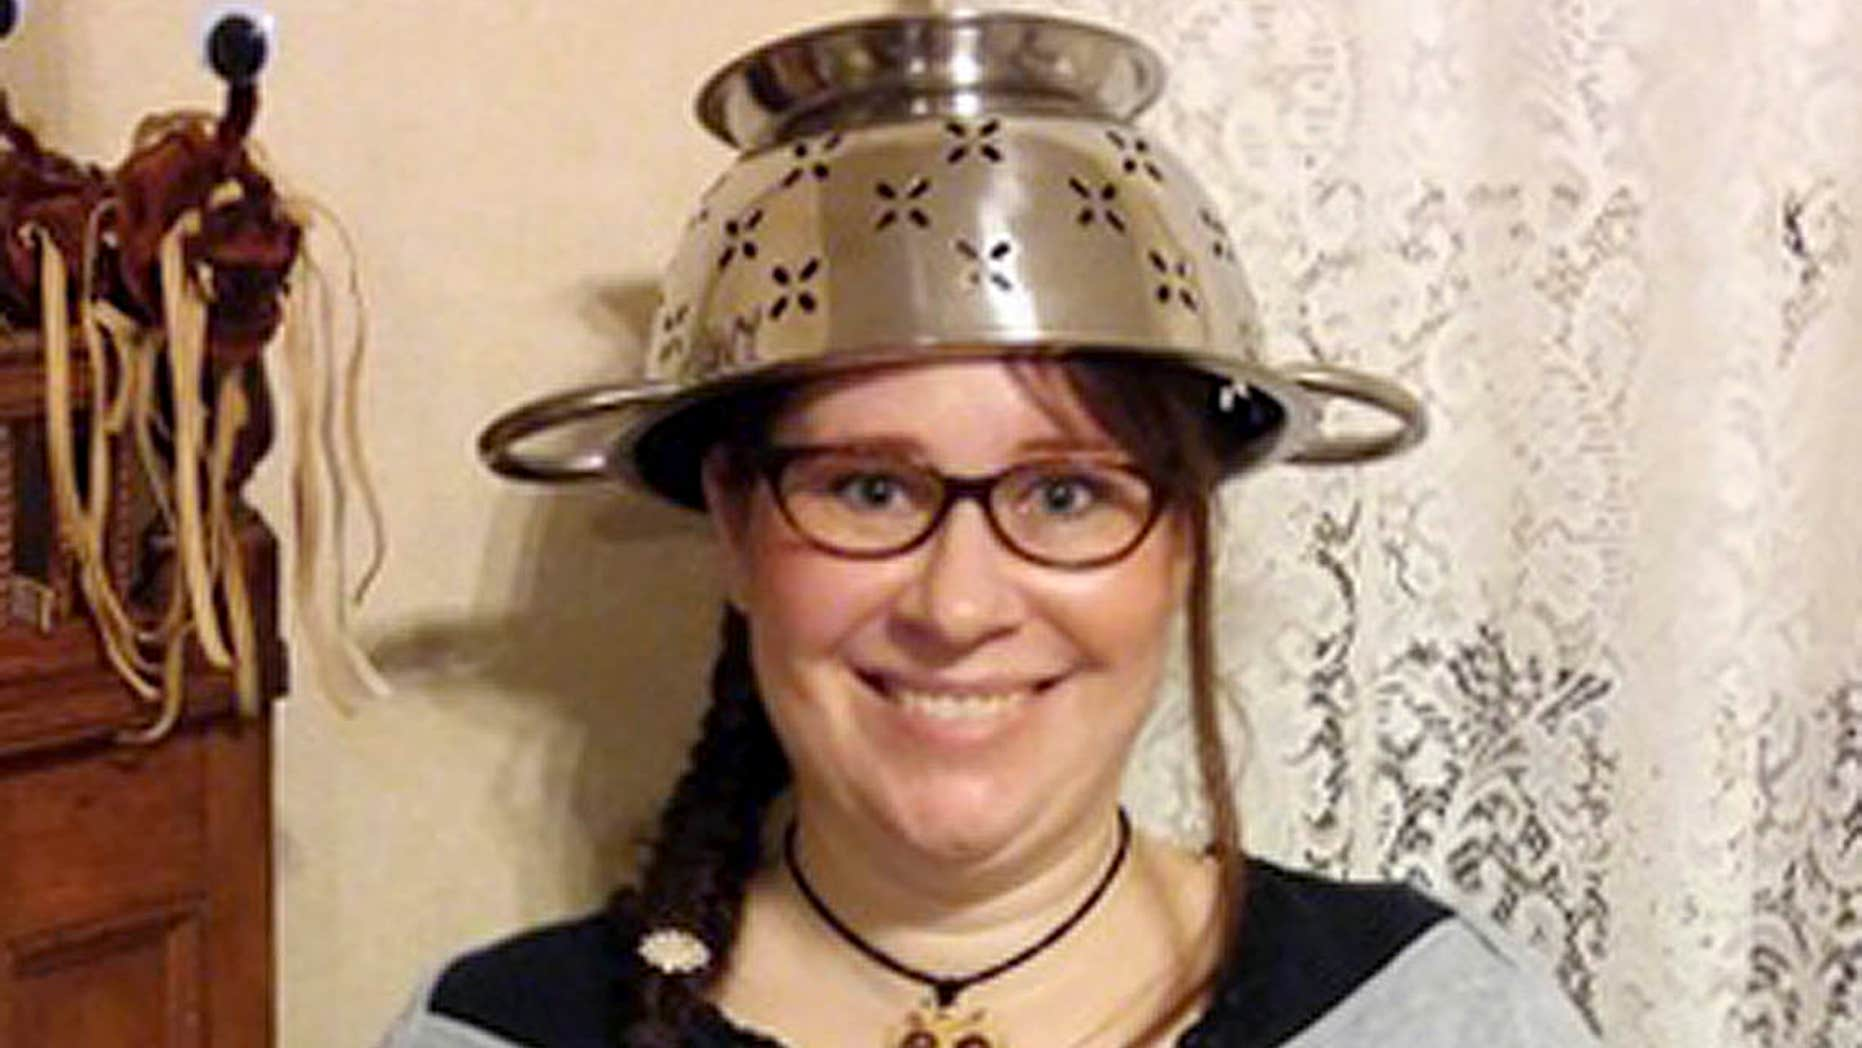 In this Nov. 12, 2015 photo provided by Darrick Fauvel, Lindsay Miller of Lowell, Mass., wears a spaghetti strainer to reflect her religious beliefs while holding her temporary driver license that also bears a photo of her wearing the colander.